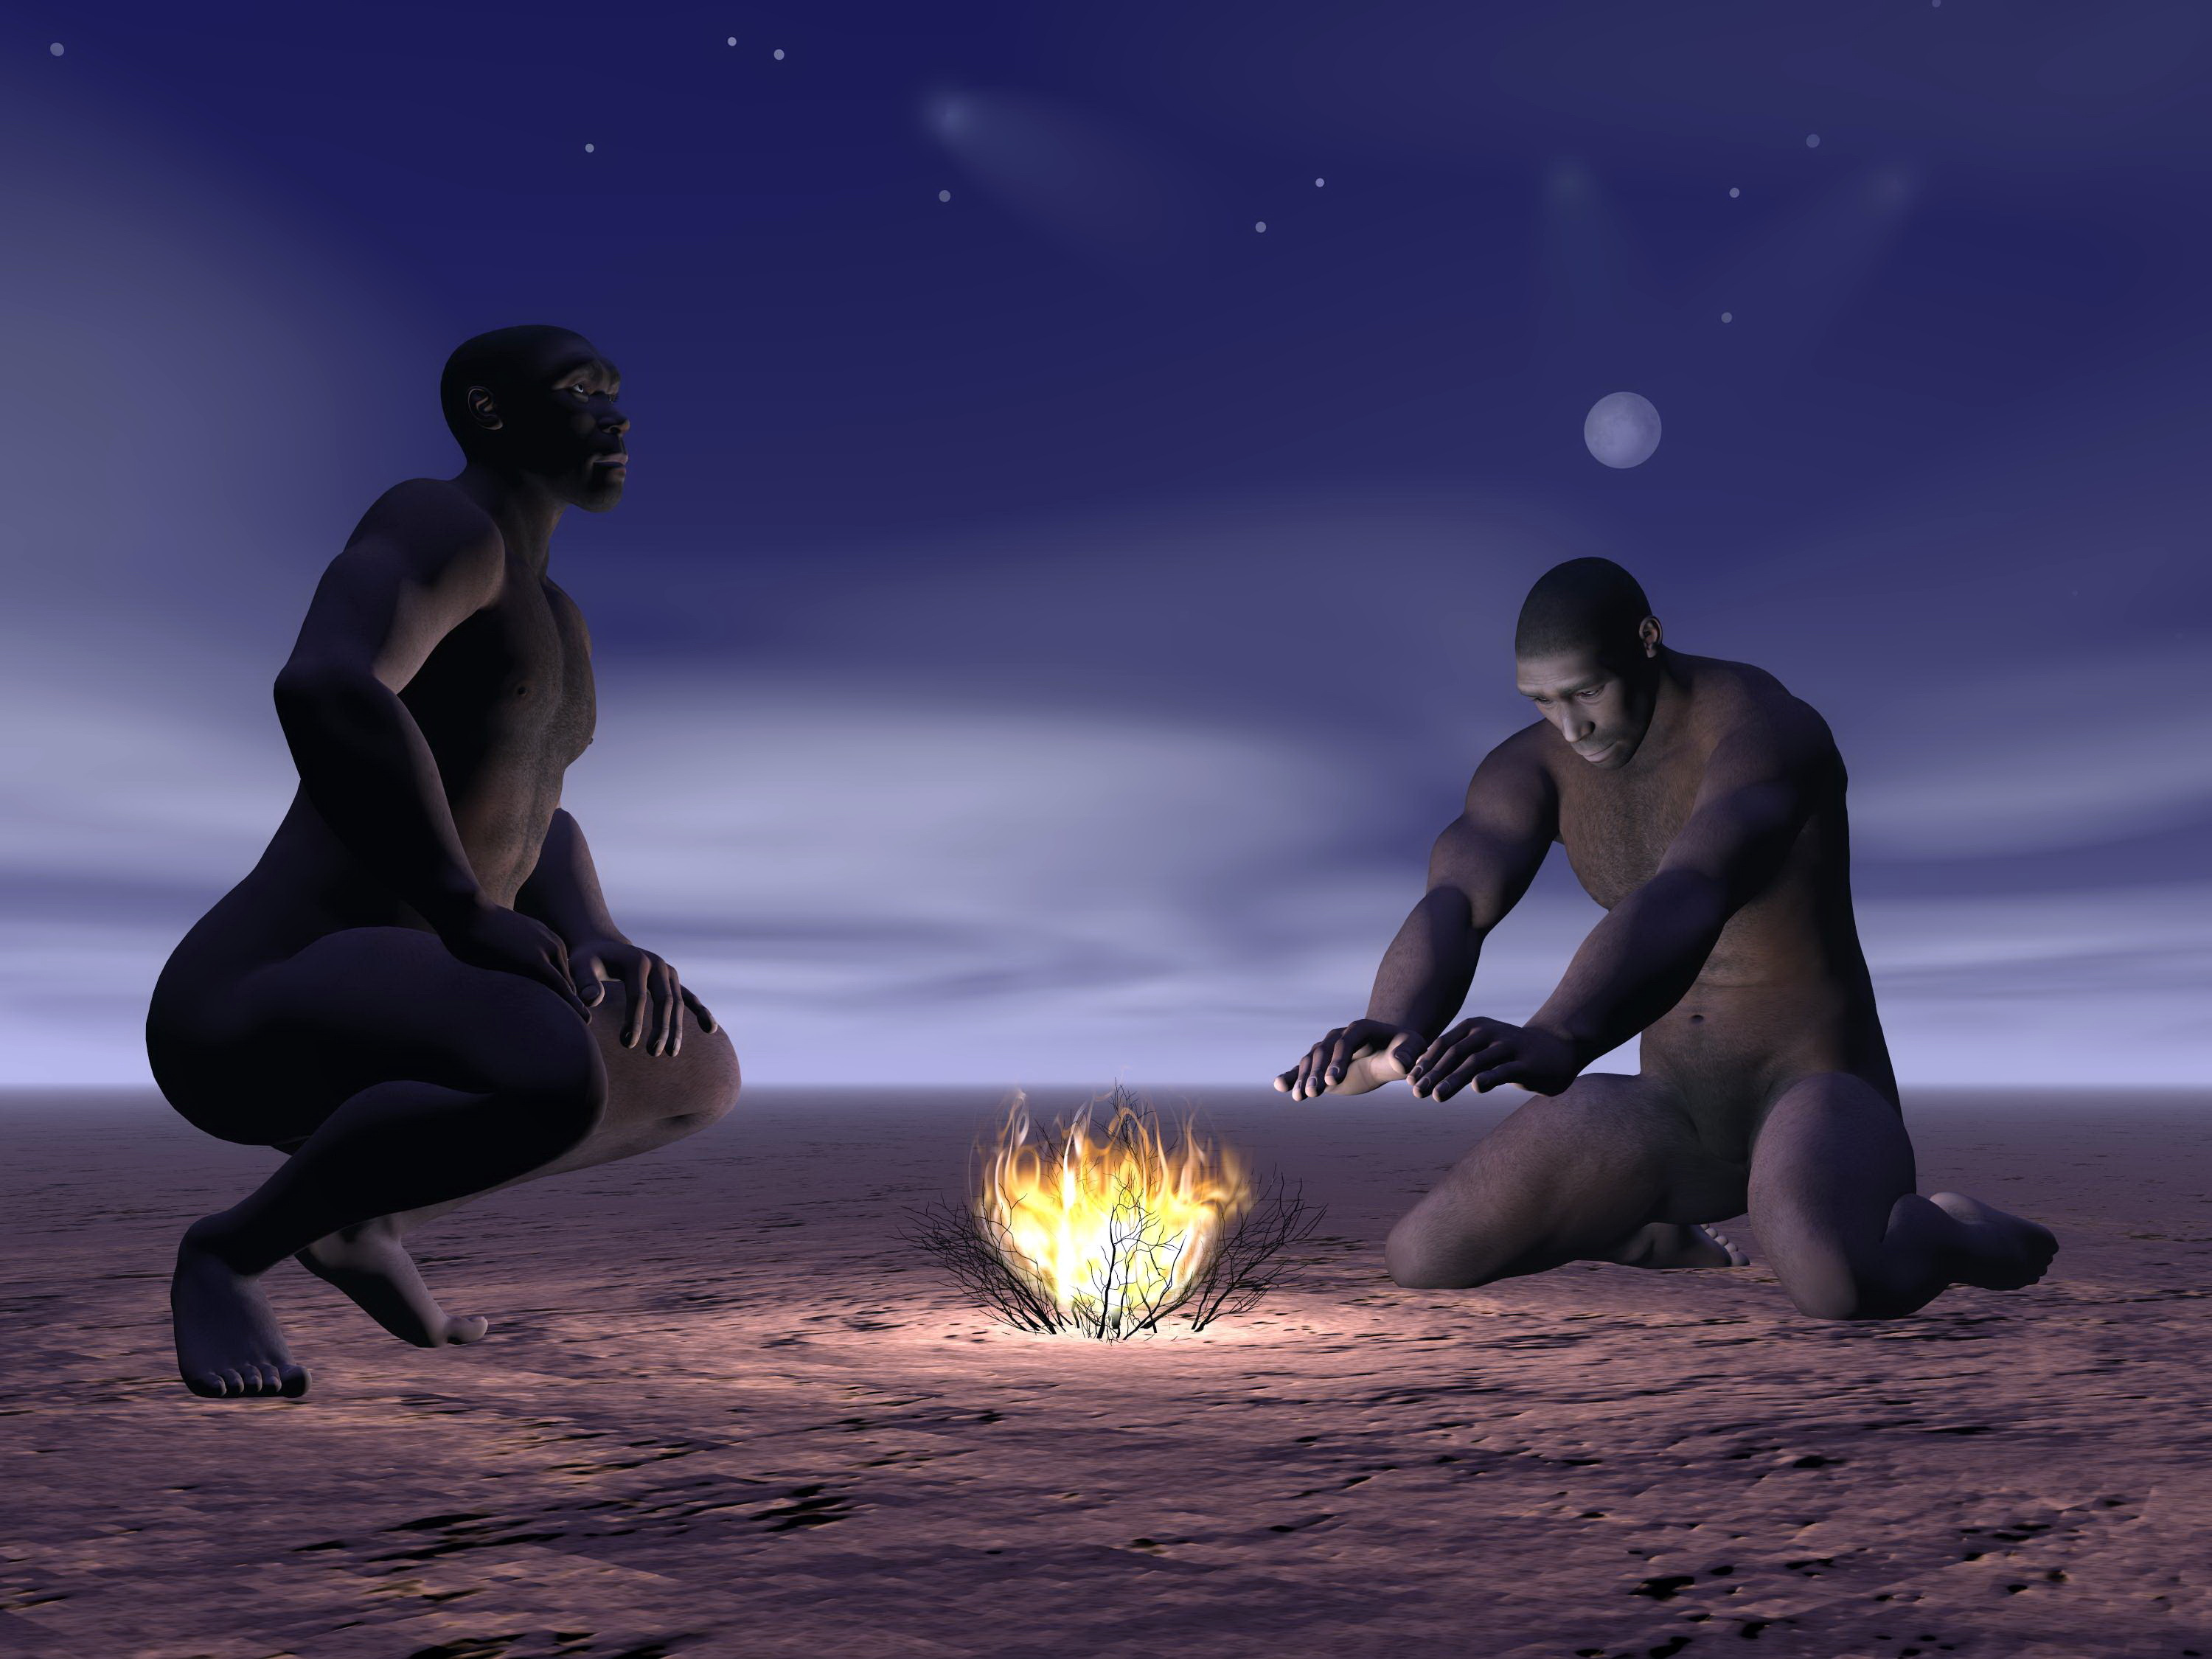 Homo erectus may have had a more refined language than was previously believed, according to a controversial new theory.